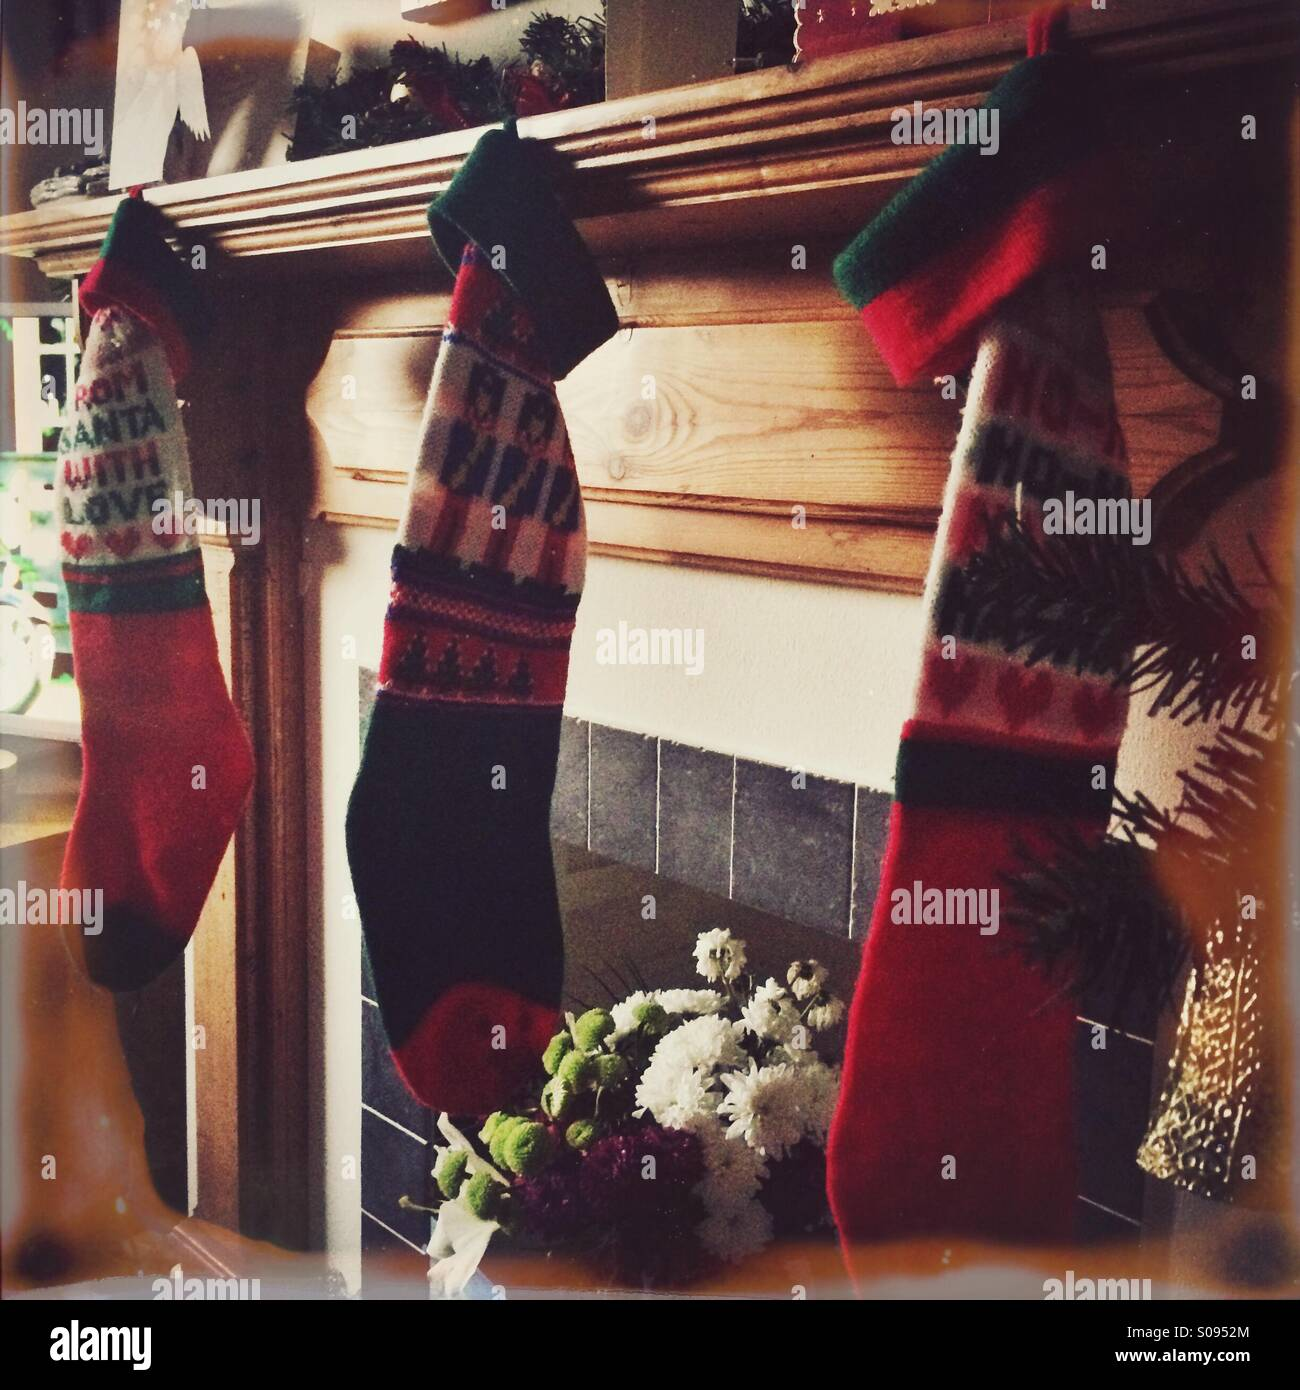 Christmas Stockings hanging above a fire place - Stock Image